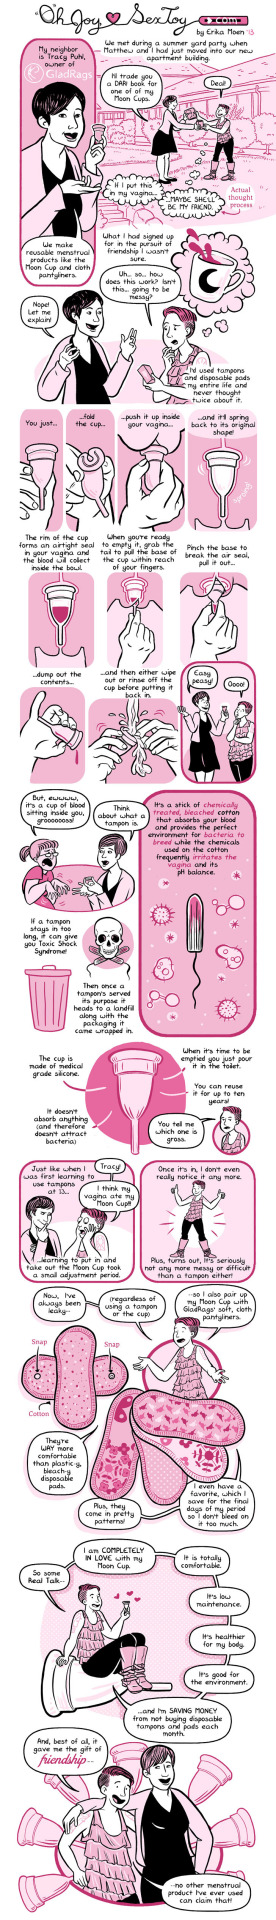 pplm :     Did you know that the average woman uses 300-420 tampons/pads each year? That's a lot of waste!   To celebrate Earth Day, consider switching to an environmentally-friendly option. Click  here  for some ideas!     Have I mentioned that I seriously love my menstrual cup? Oh,  right,  I have.  I also super love this rad comic about using them!  Am tempted to try cloth liners next. They just seem warm and cozy.